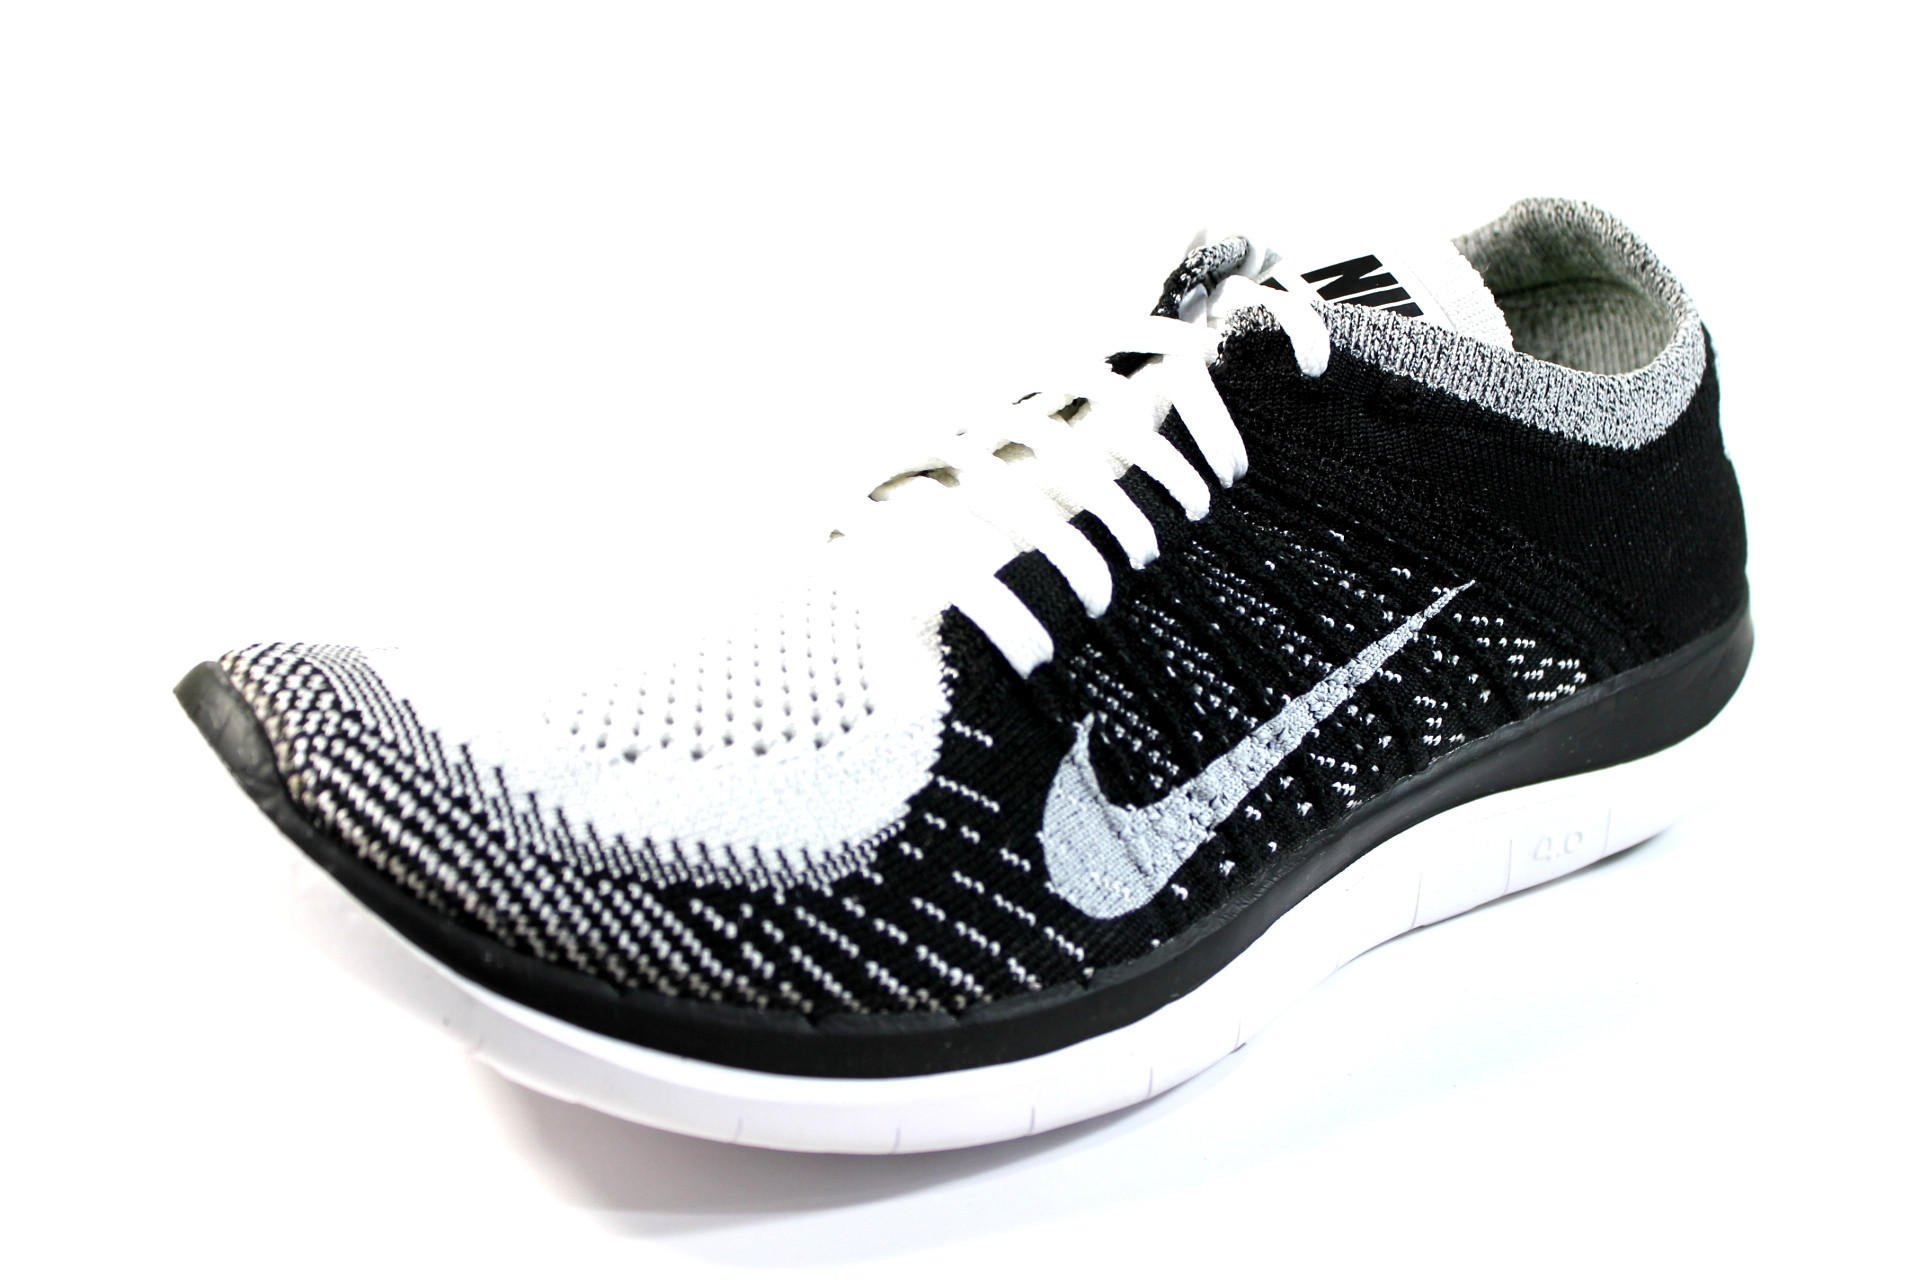 hot sales uk trainers nike free shoes womens diamond wanelo.co 03b7a4cef0 f2c2e24f20